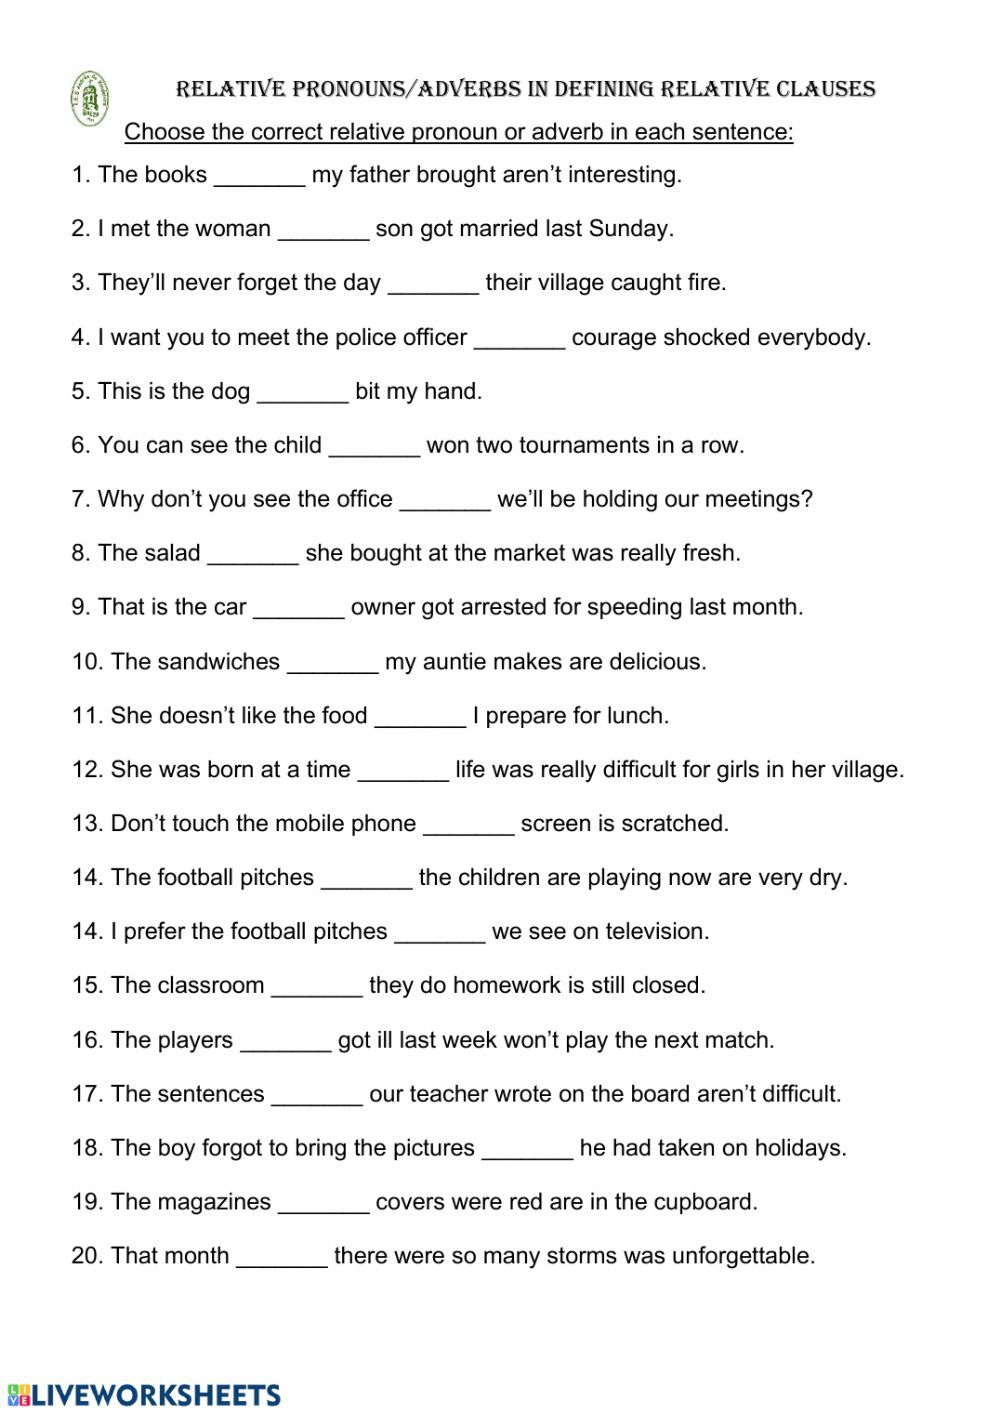 Relative Pronouns Online Worksheet For 3º Eso You Can Do The Exercises Online Or Download The Worksheet In 2020 Relative Pronouns Pronoun Worksheets Adverbs Worksheet